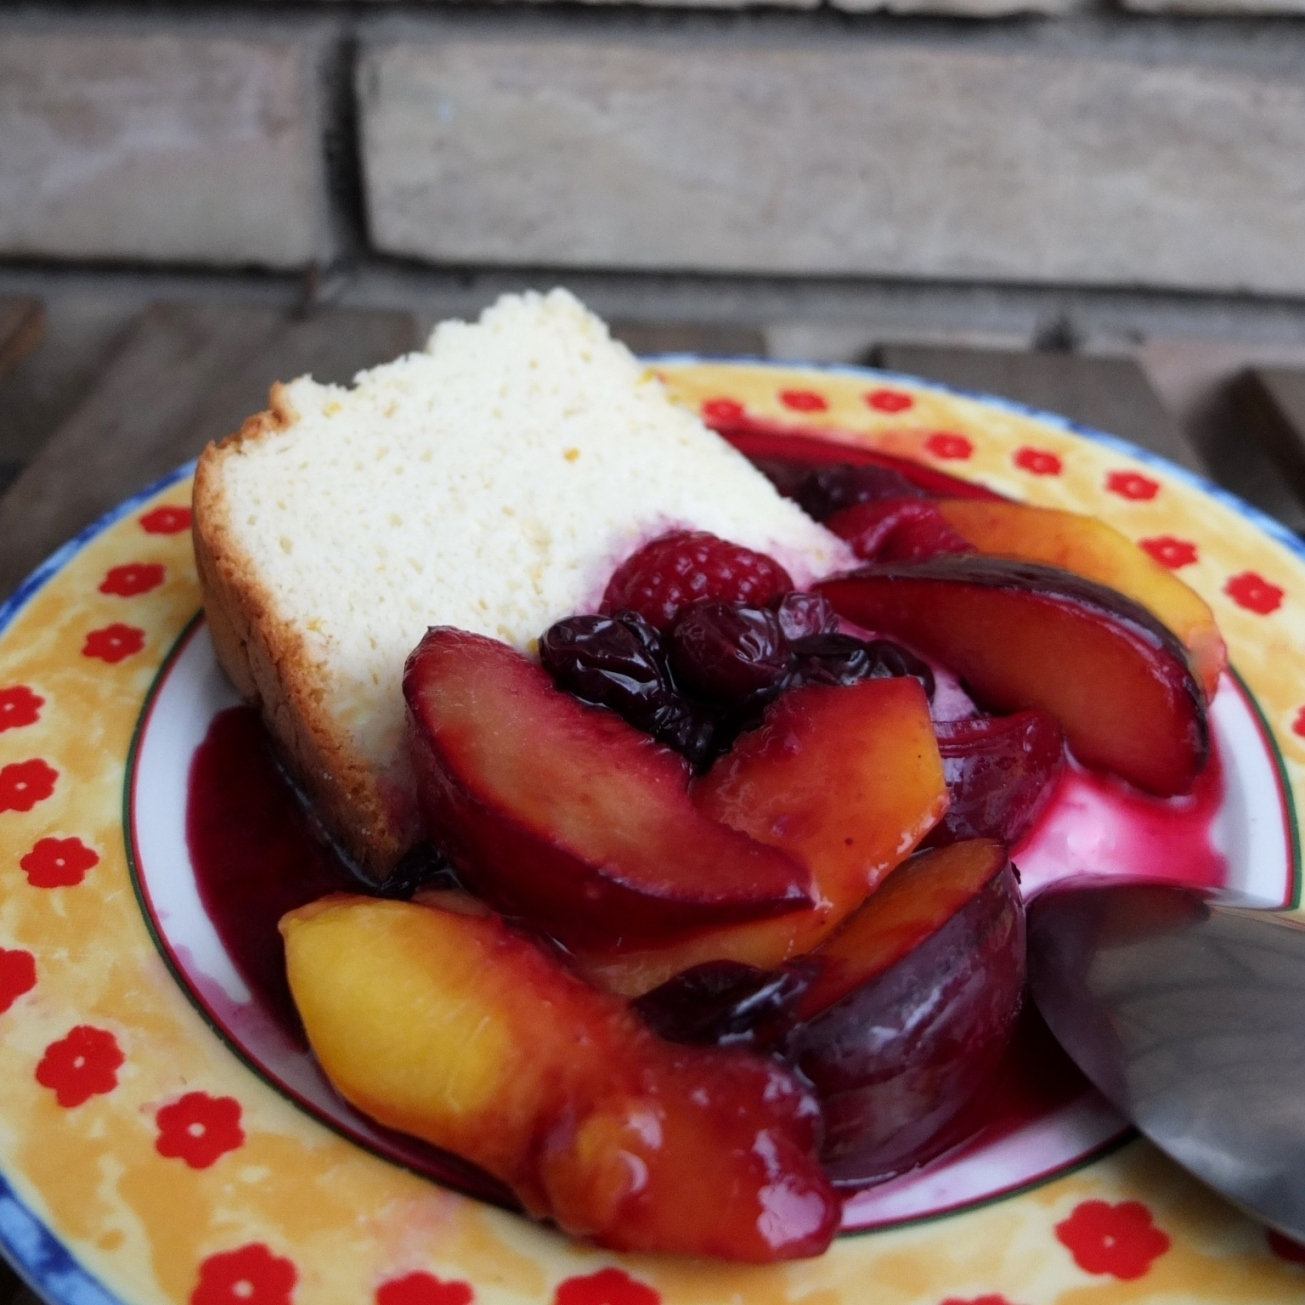 spiced fruit en papillote with Japanese cheesecake